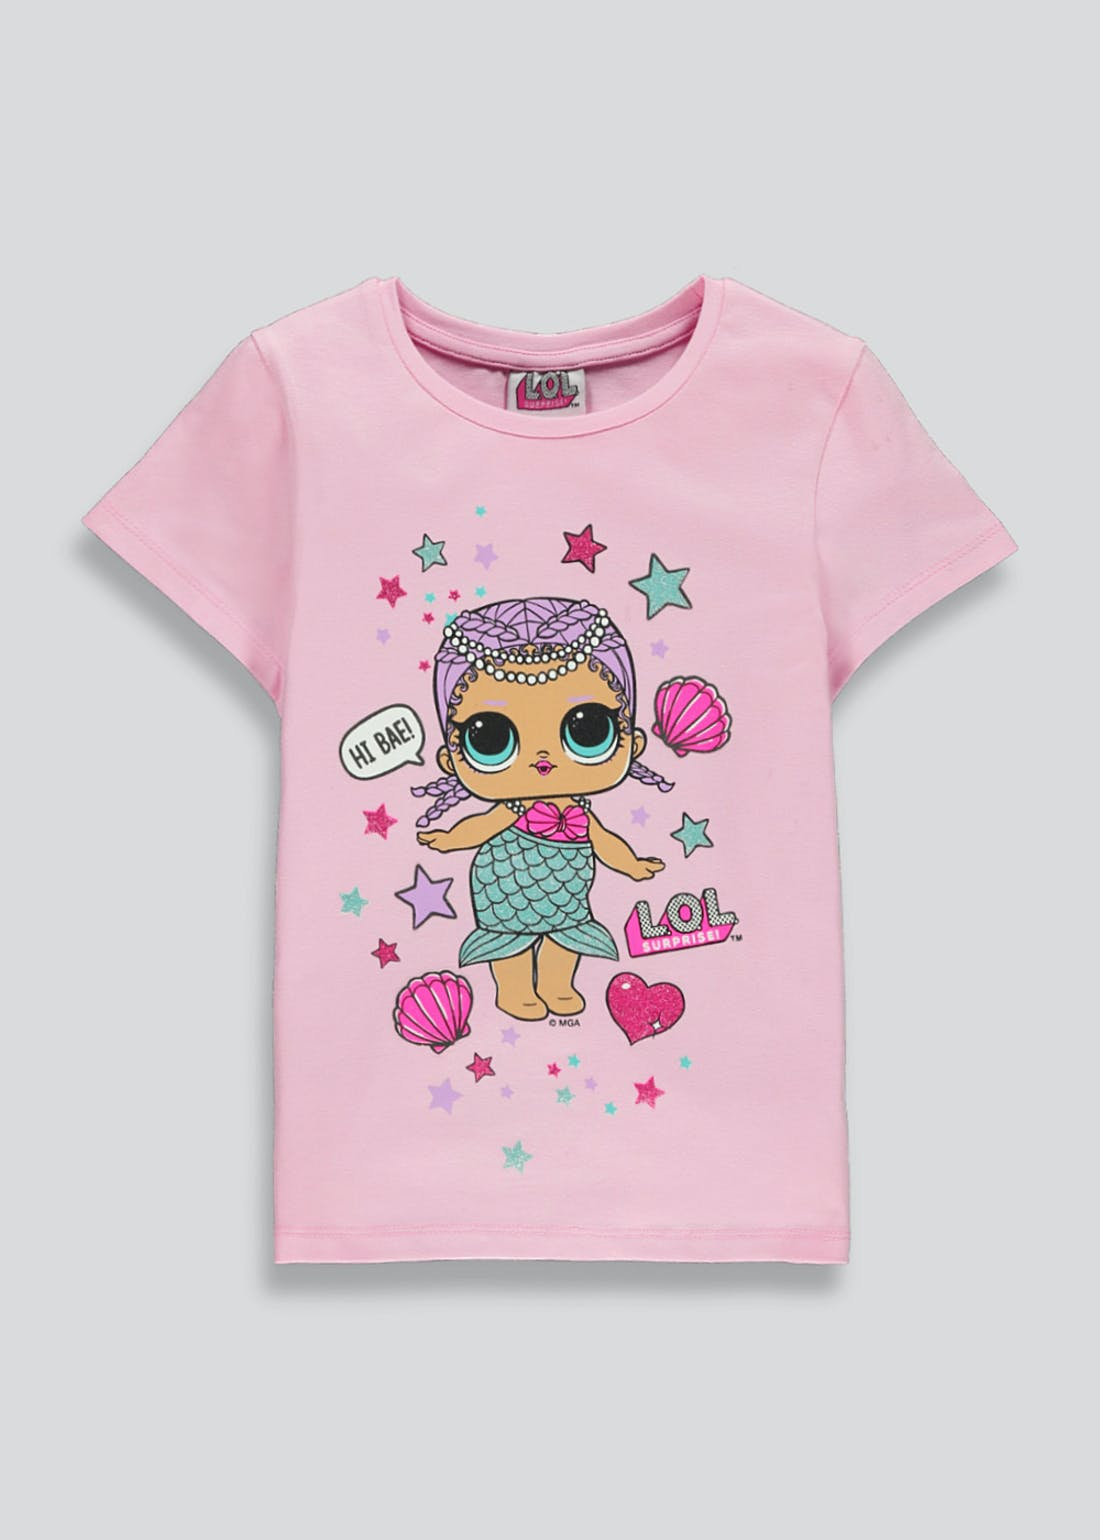 L.O.L. Surprise Mermaid Doll T-Shirt (4-10yrs)